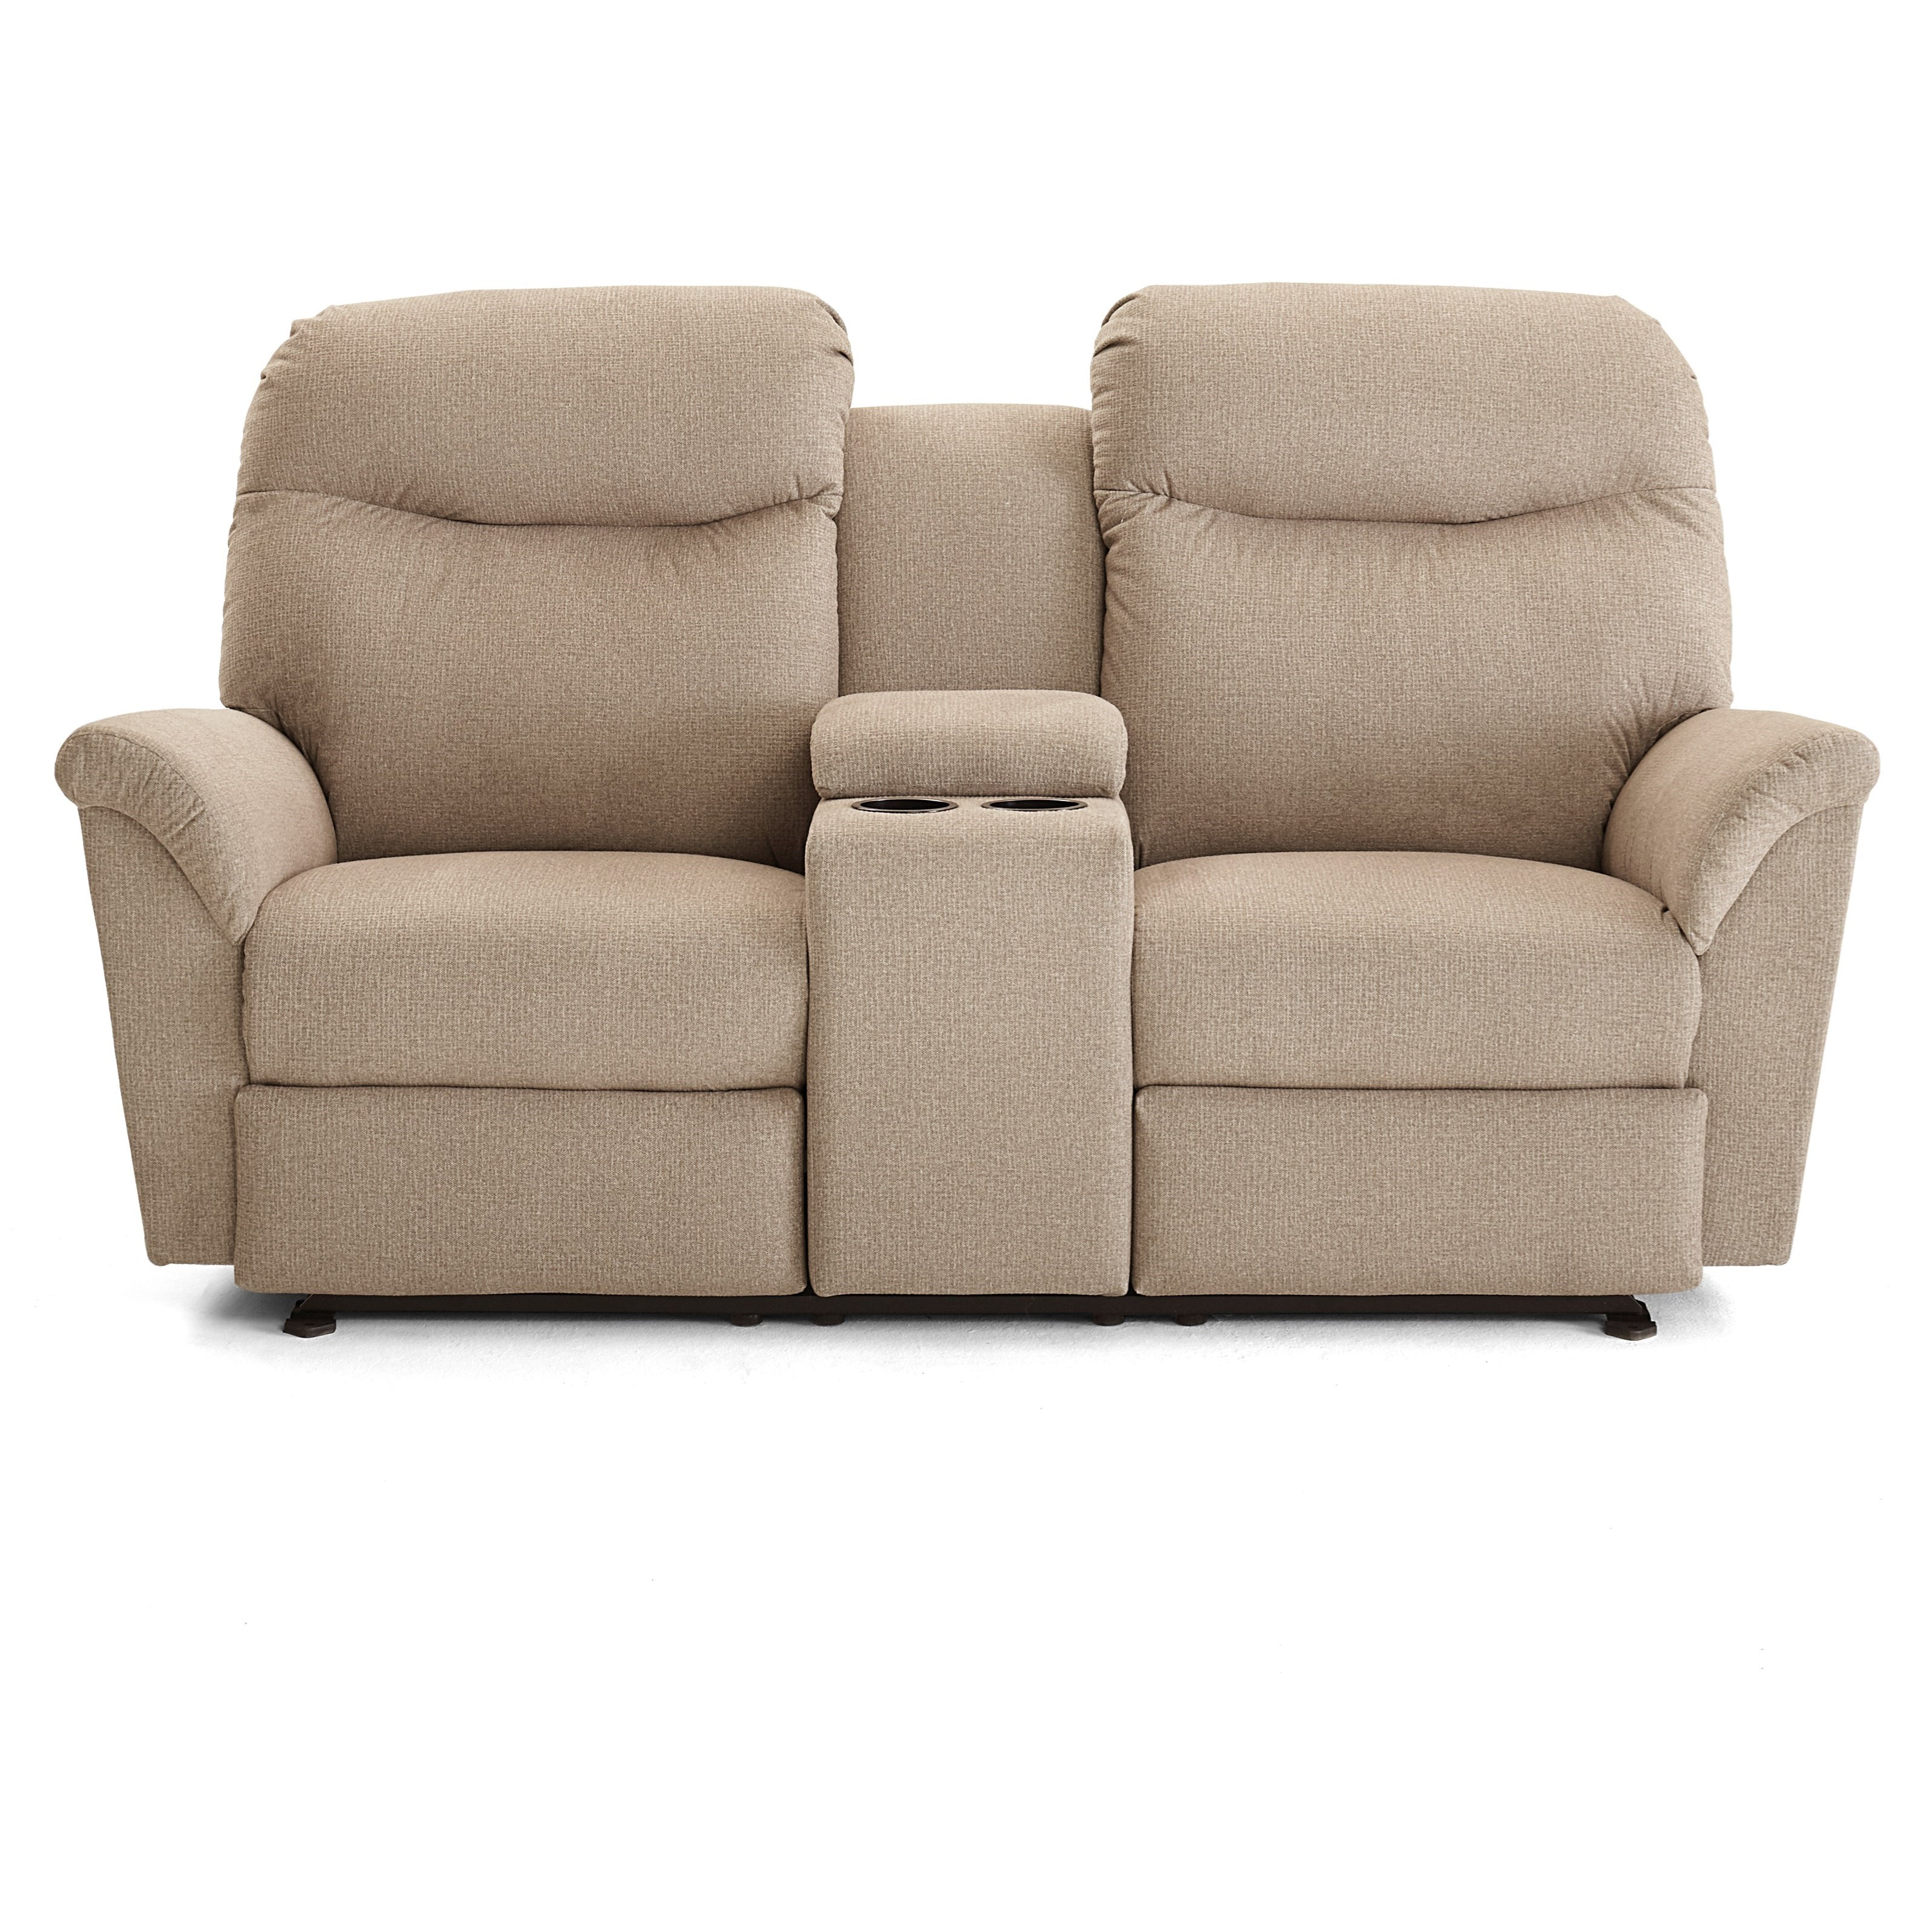 Caitlin Power Rocking Reclining Console Loveseat by Best Home Furnishings at Best Home Furnishings